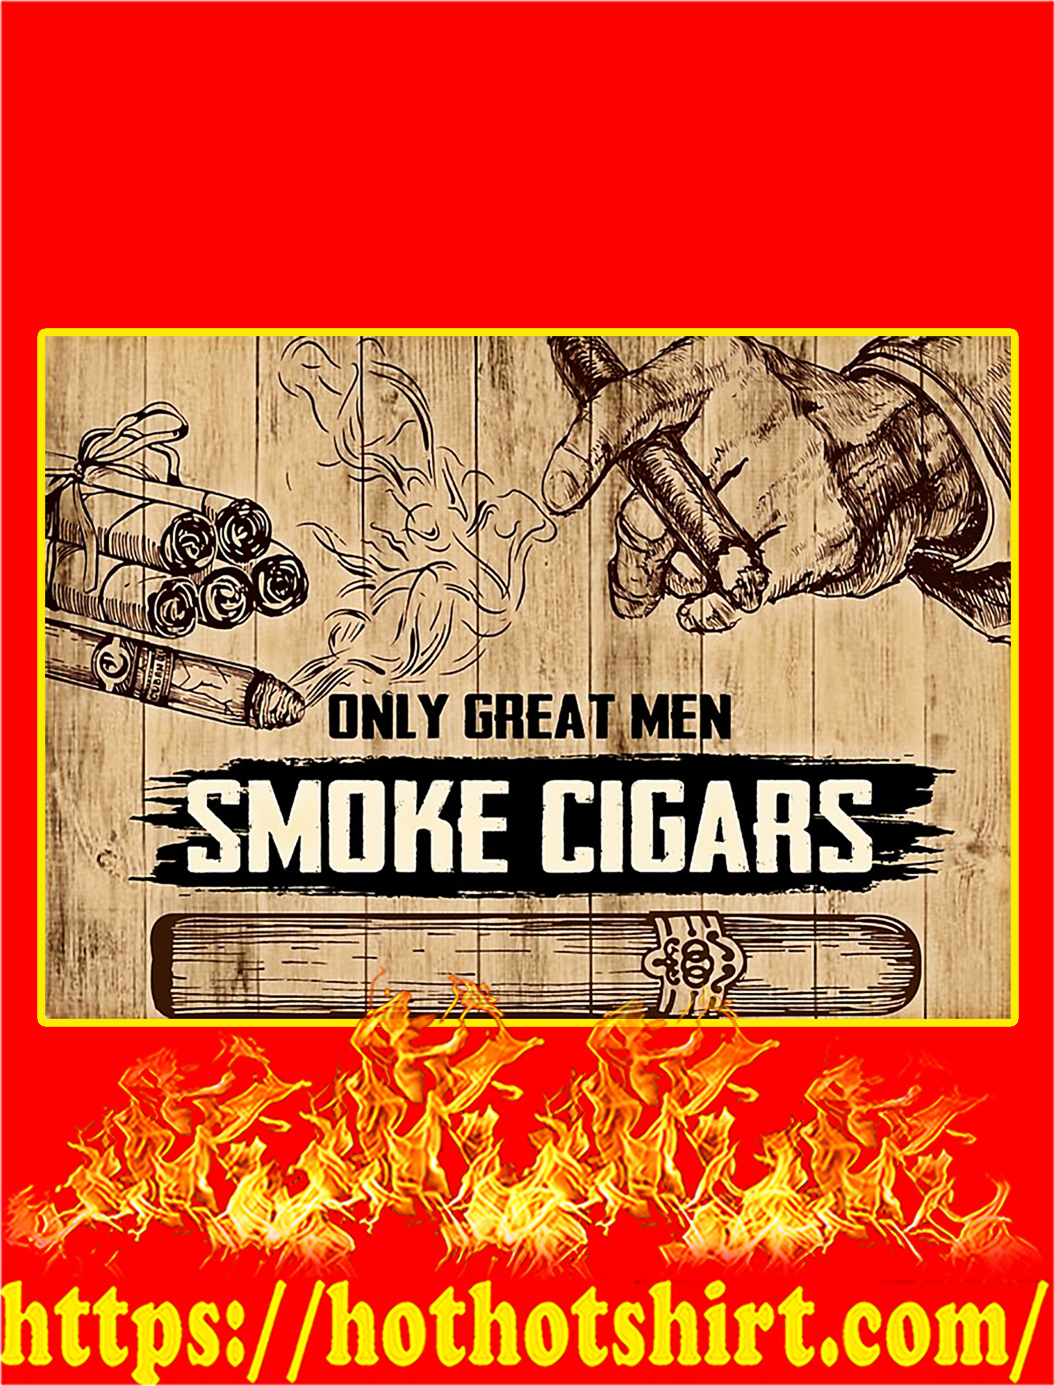 Only A Great Men Smoke Cigars Poster - A4